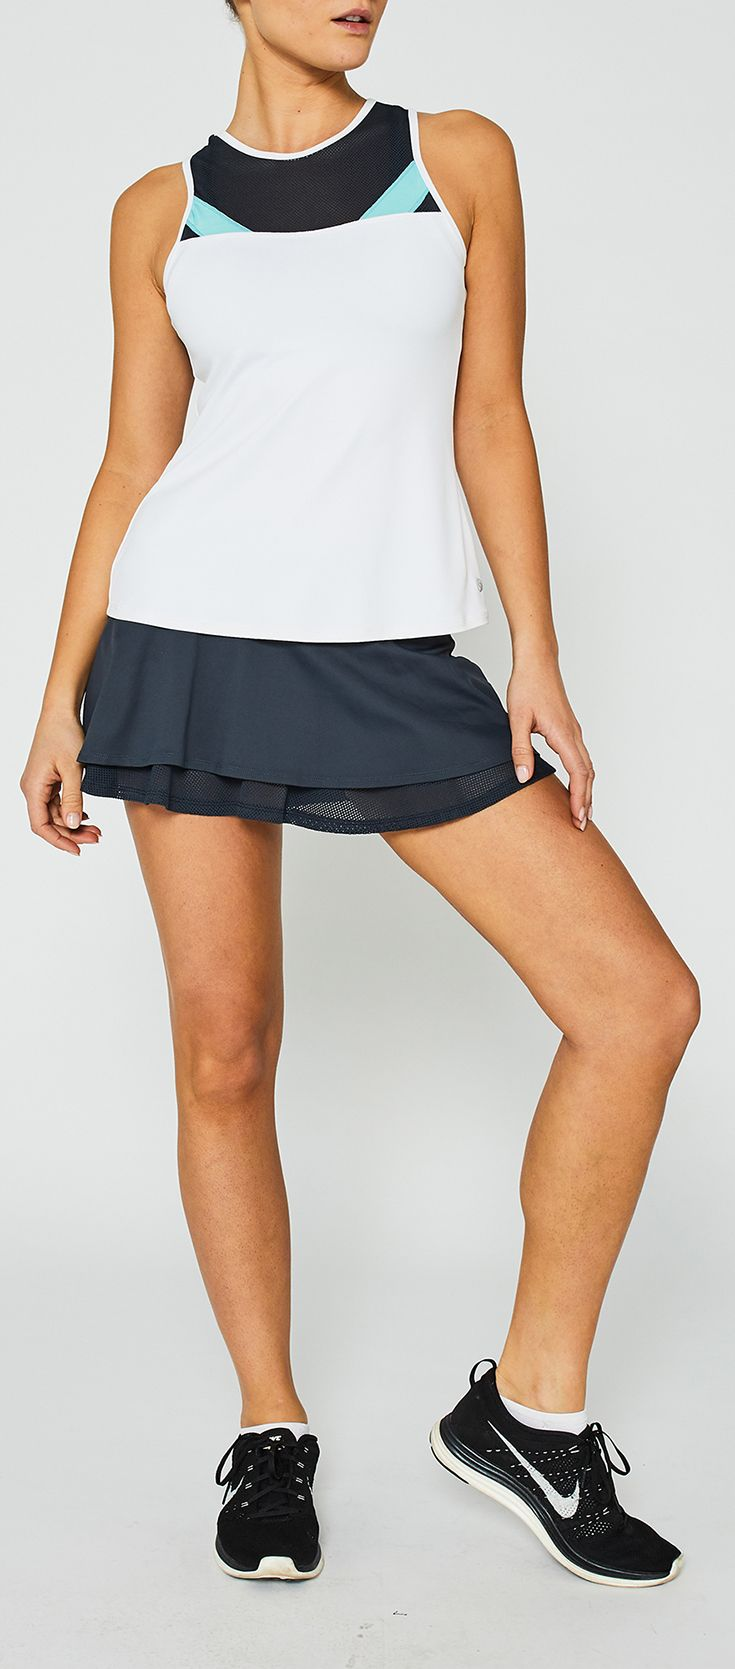 Lija introduces the newest tennis and training collection for spring. The  Lija Laguna Surf collection of premier women's tennis apparel offers great  looking ...